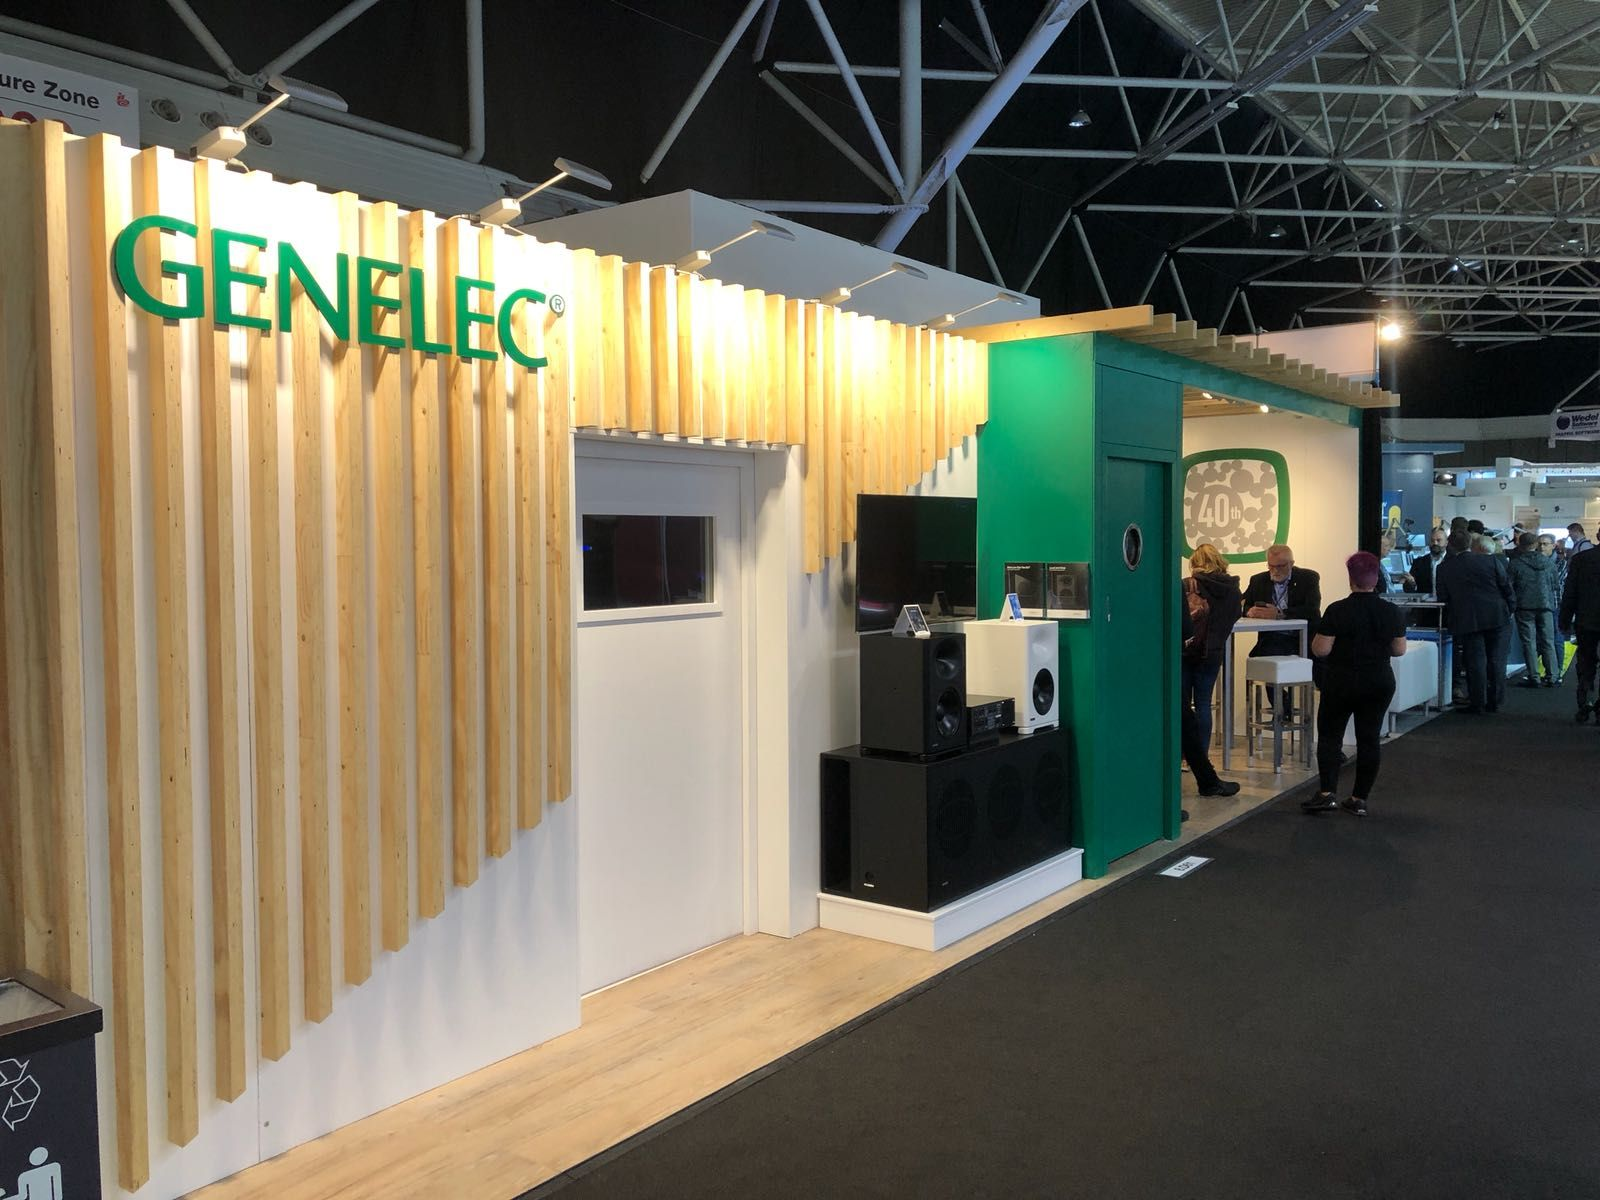 Expo Exhibition Stands Zone : Exhibition stand build genelec the halo group : our structure